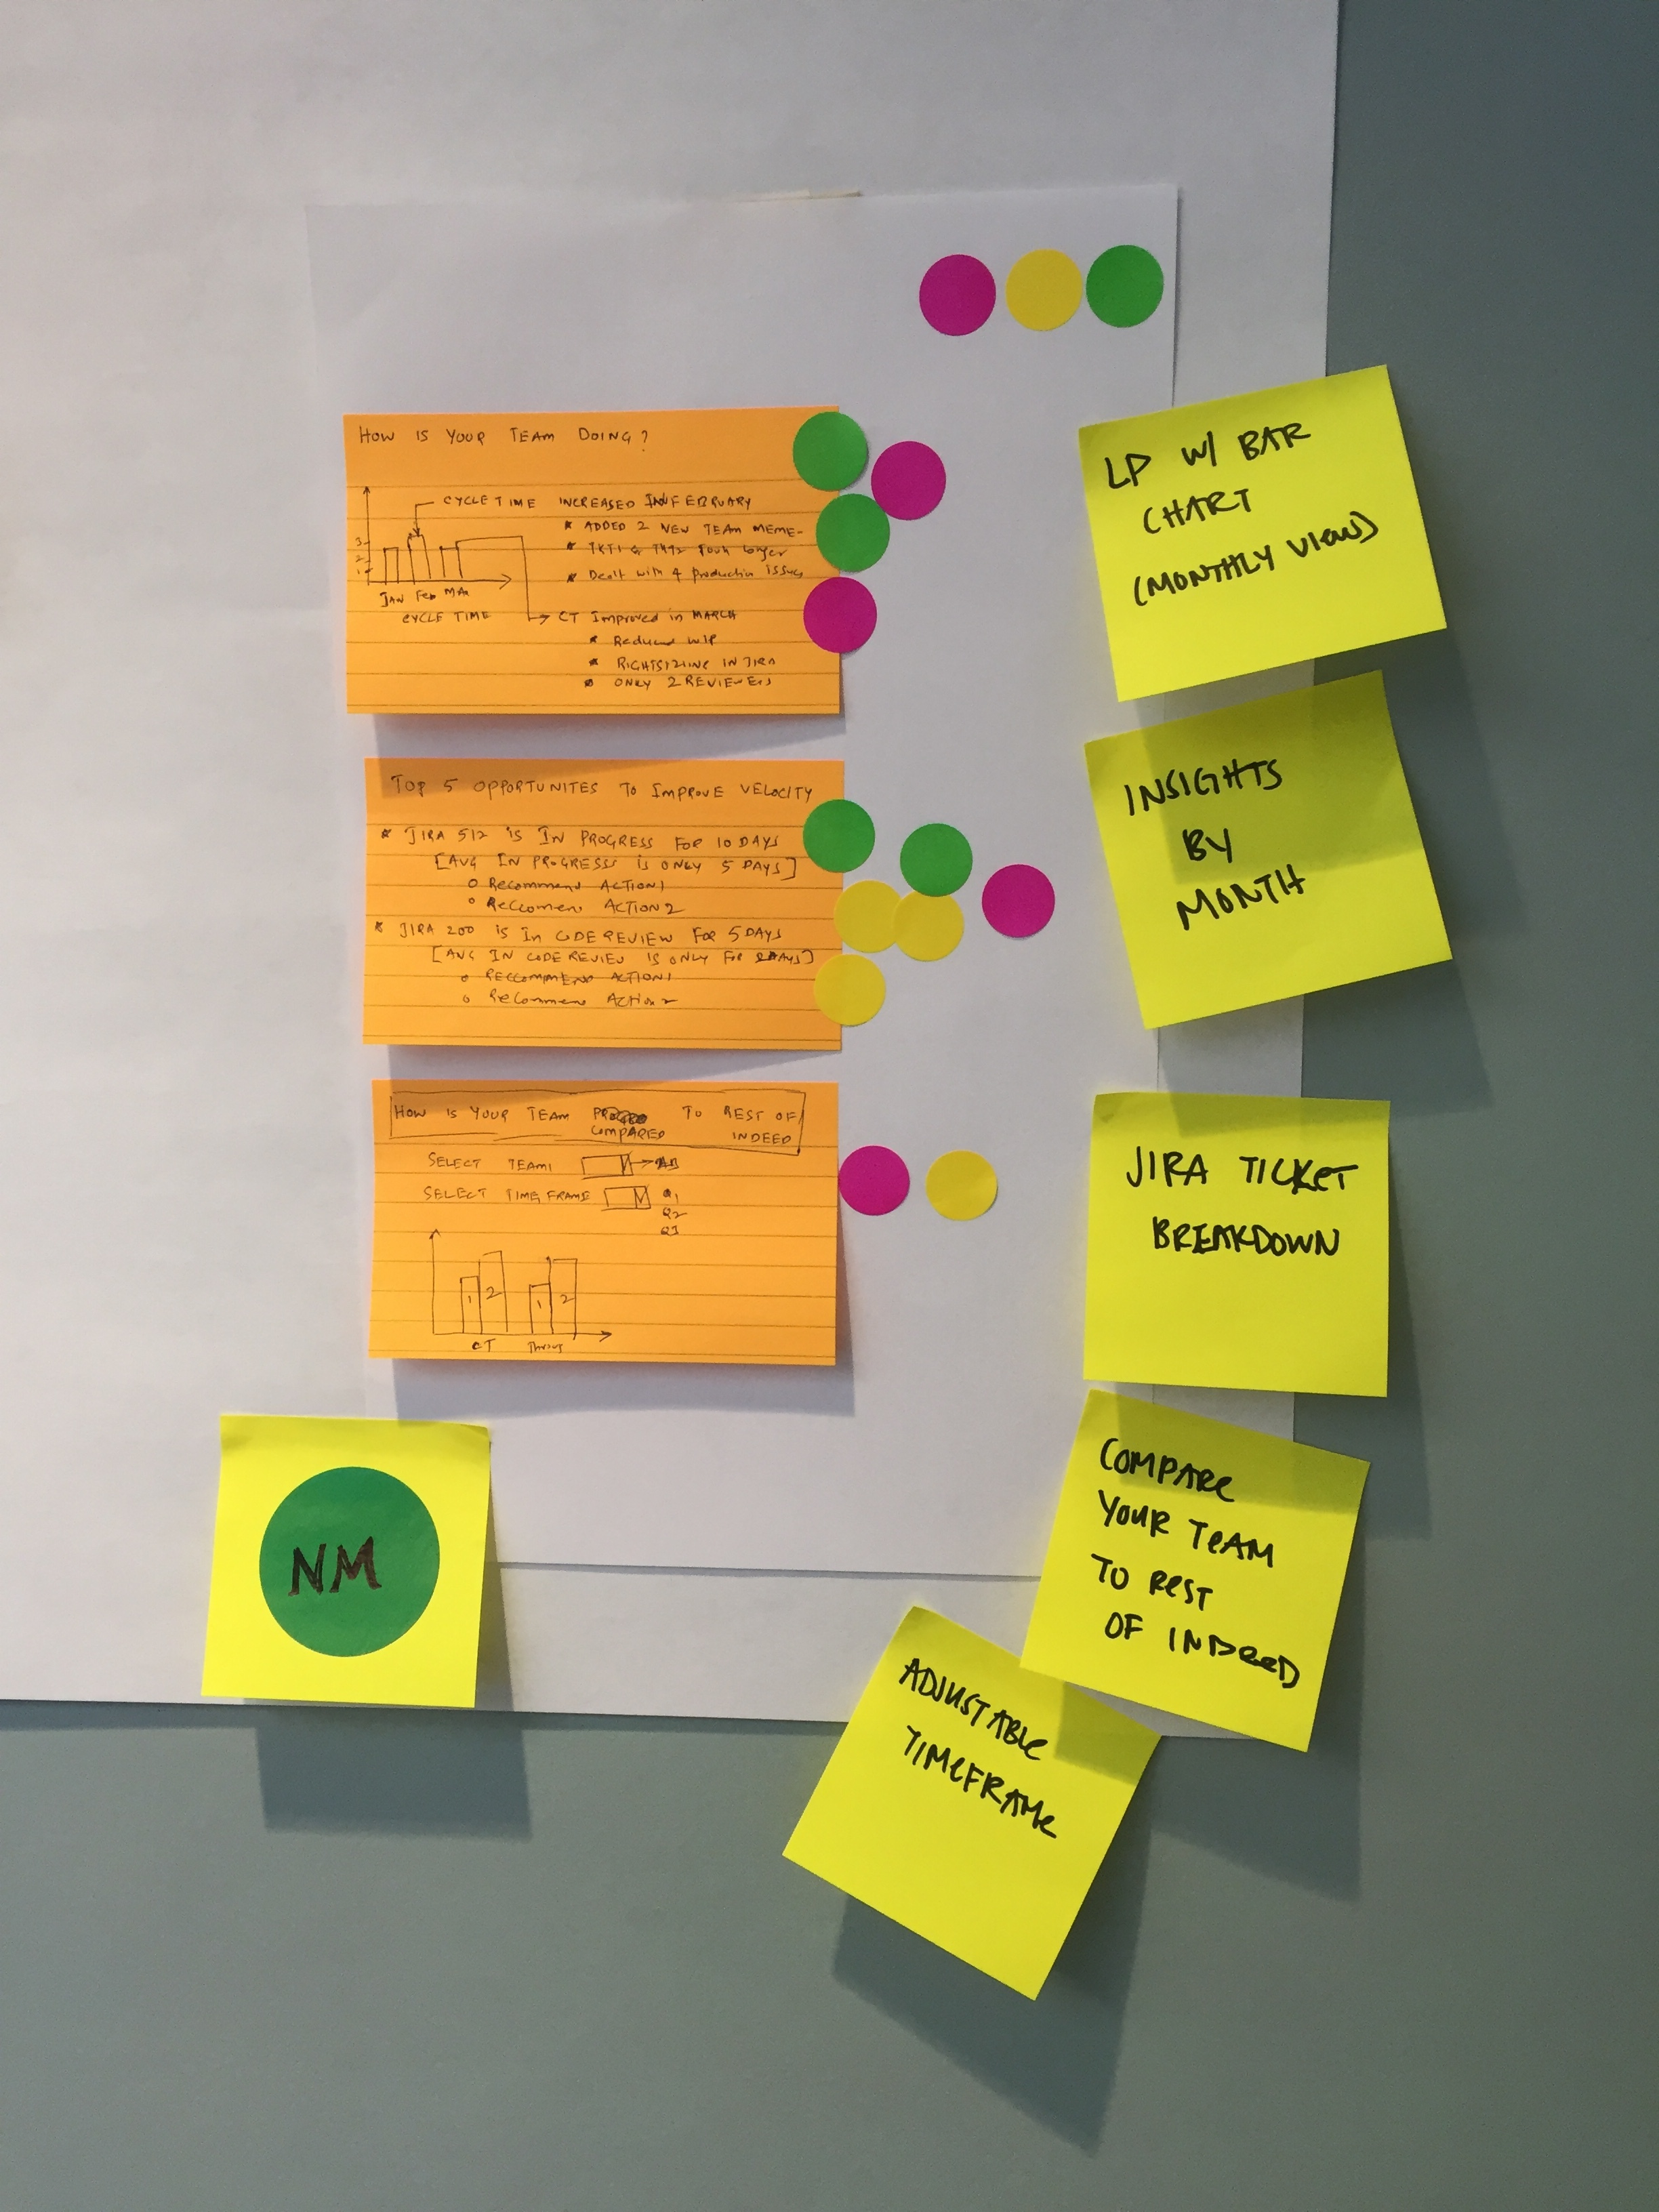 Solution sketches from the sprint, with dots representing votes for a feature or entire solution flow.